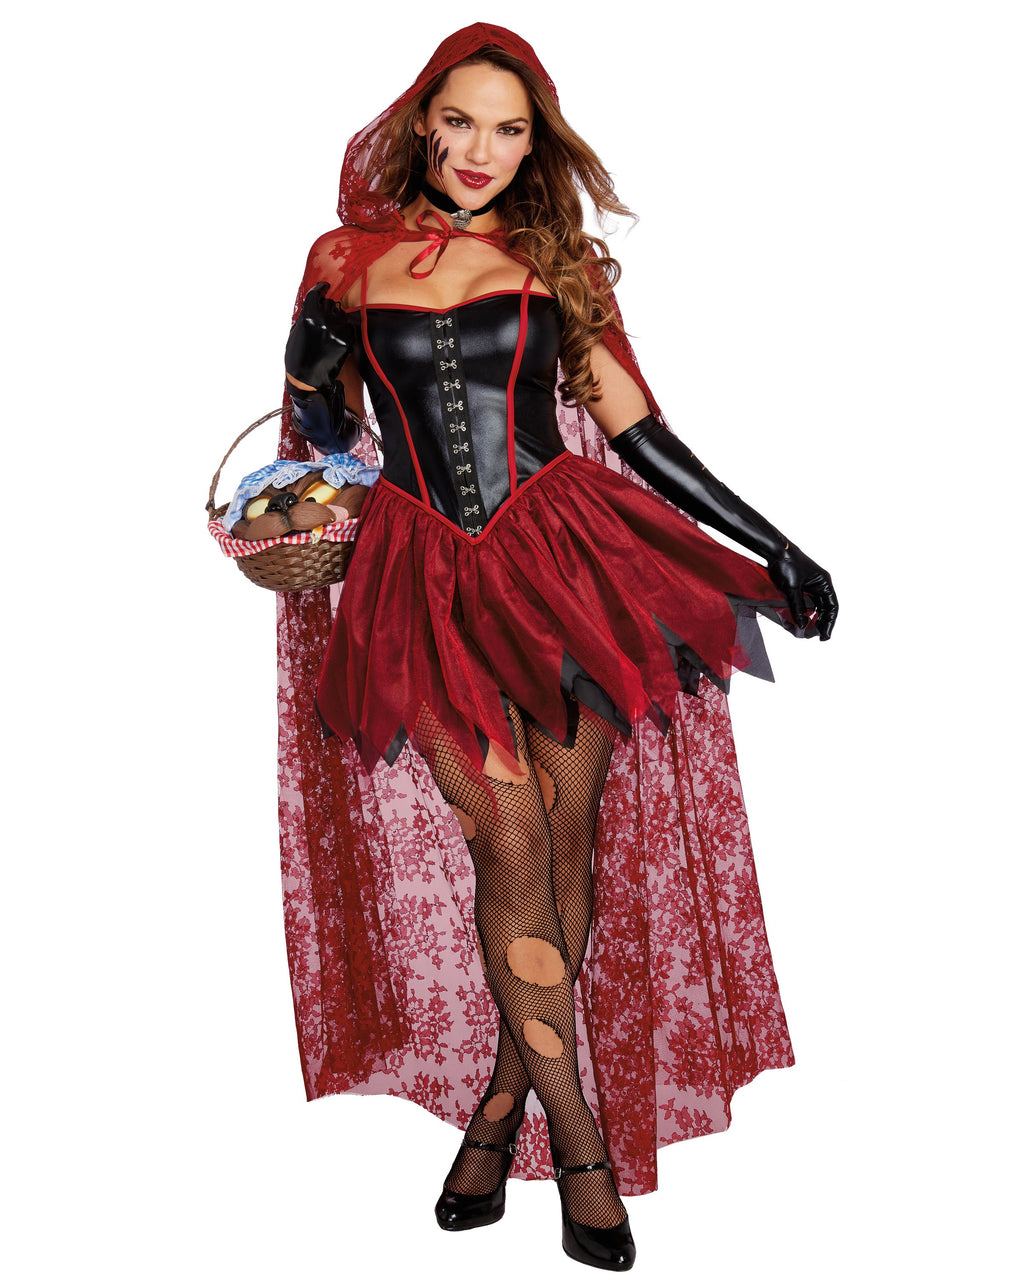 Big Bad Red Women's Costume Dreamgirl Costume